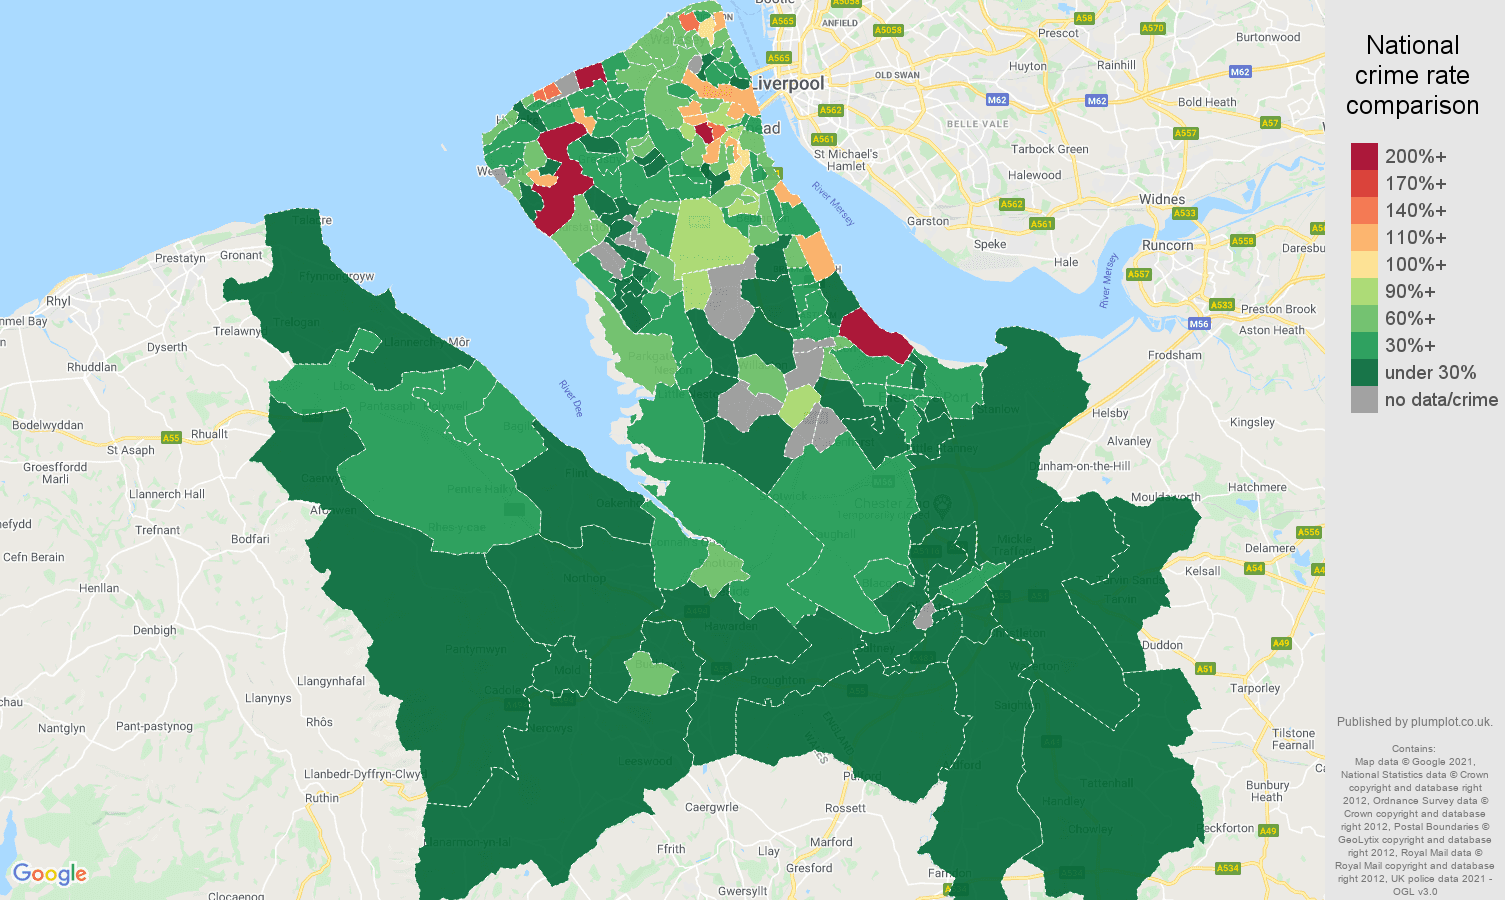 Chester vehicle crime rate comparison map